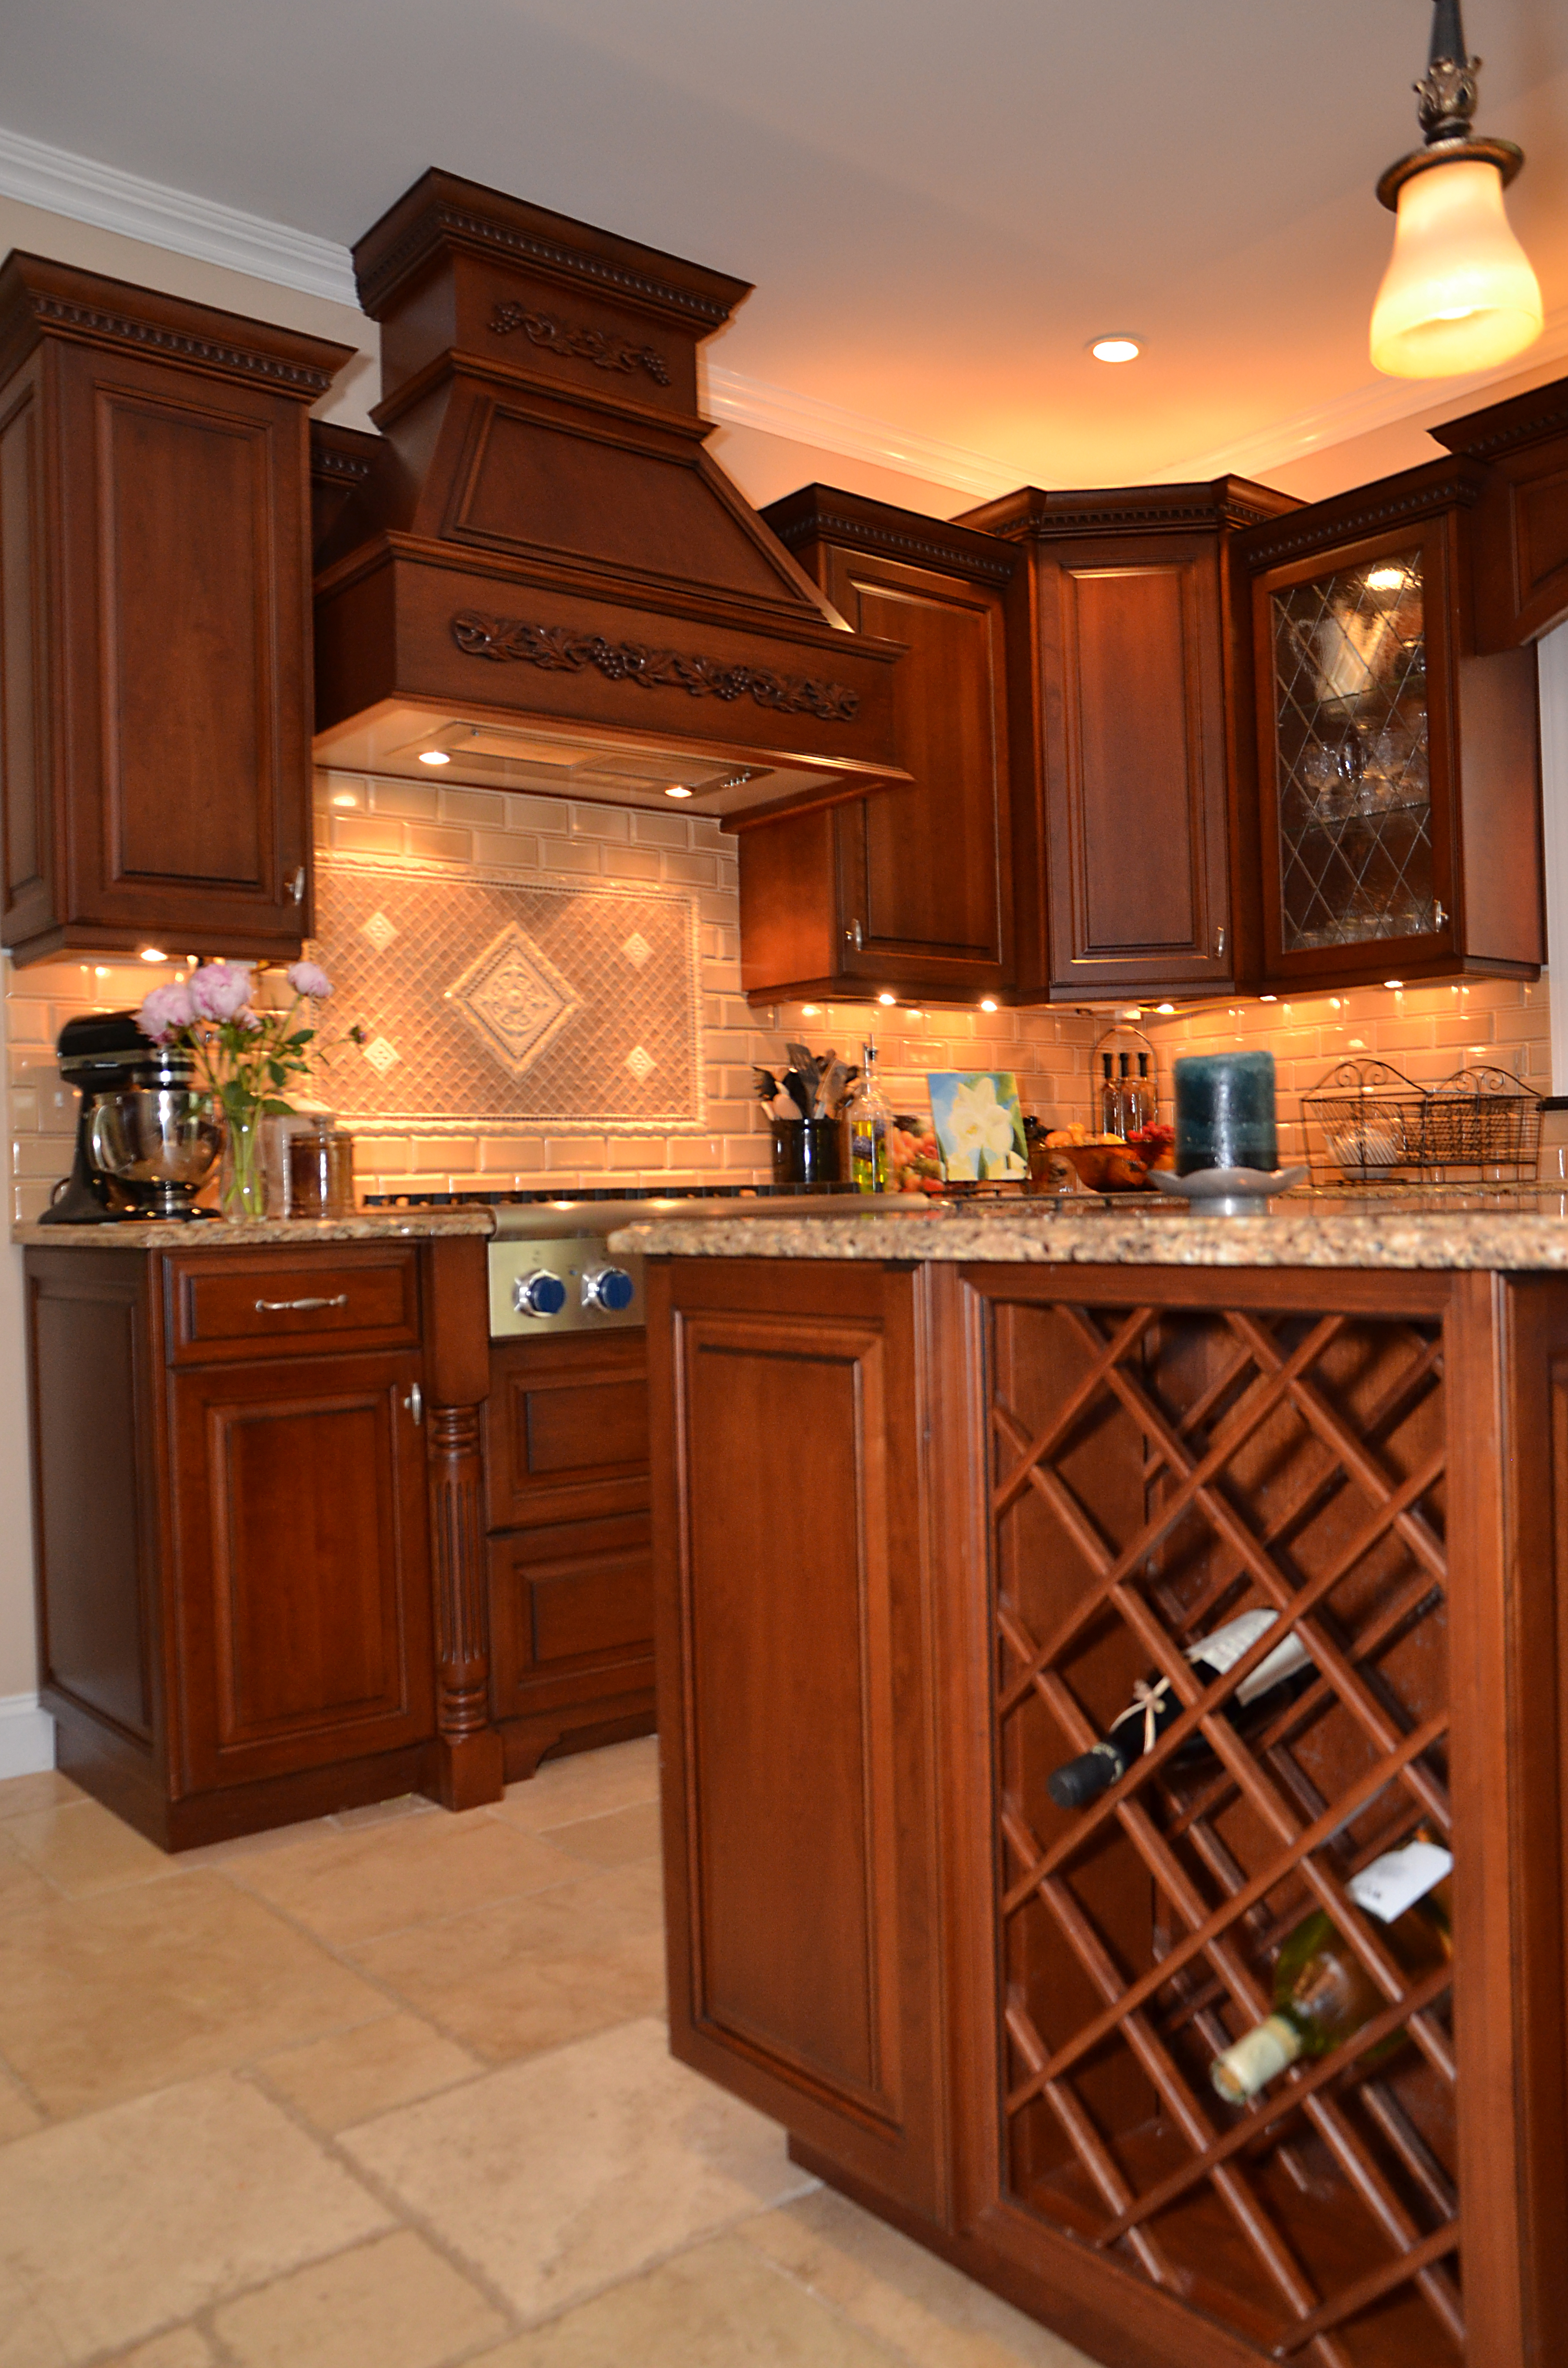 kitchen hood ideas - Kitchen Hood Ideas